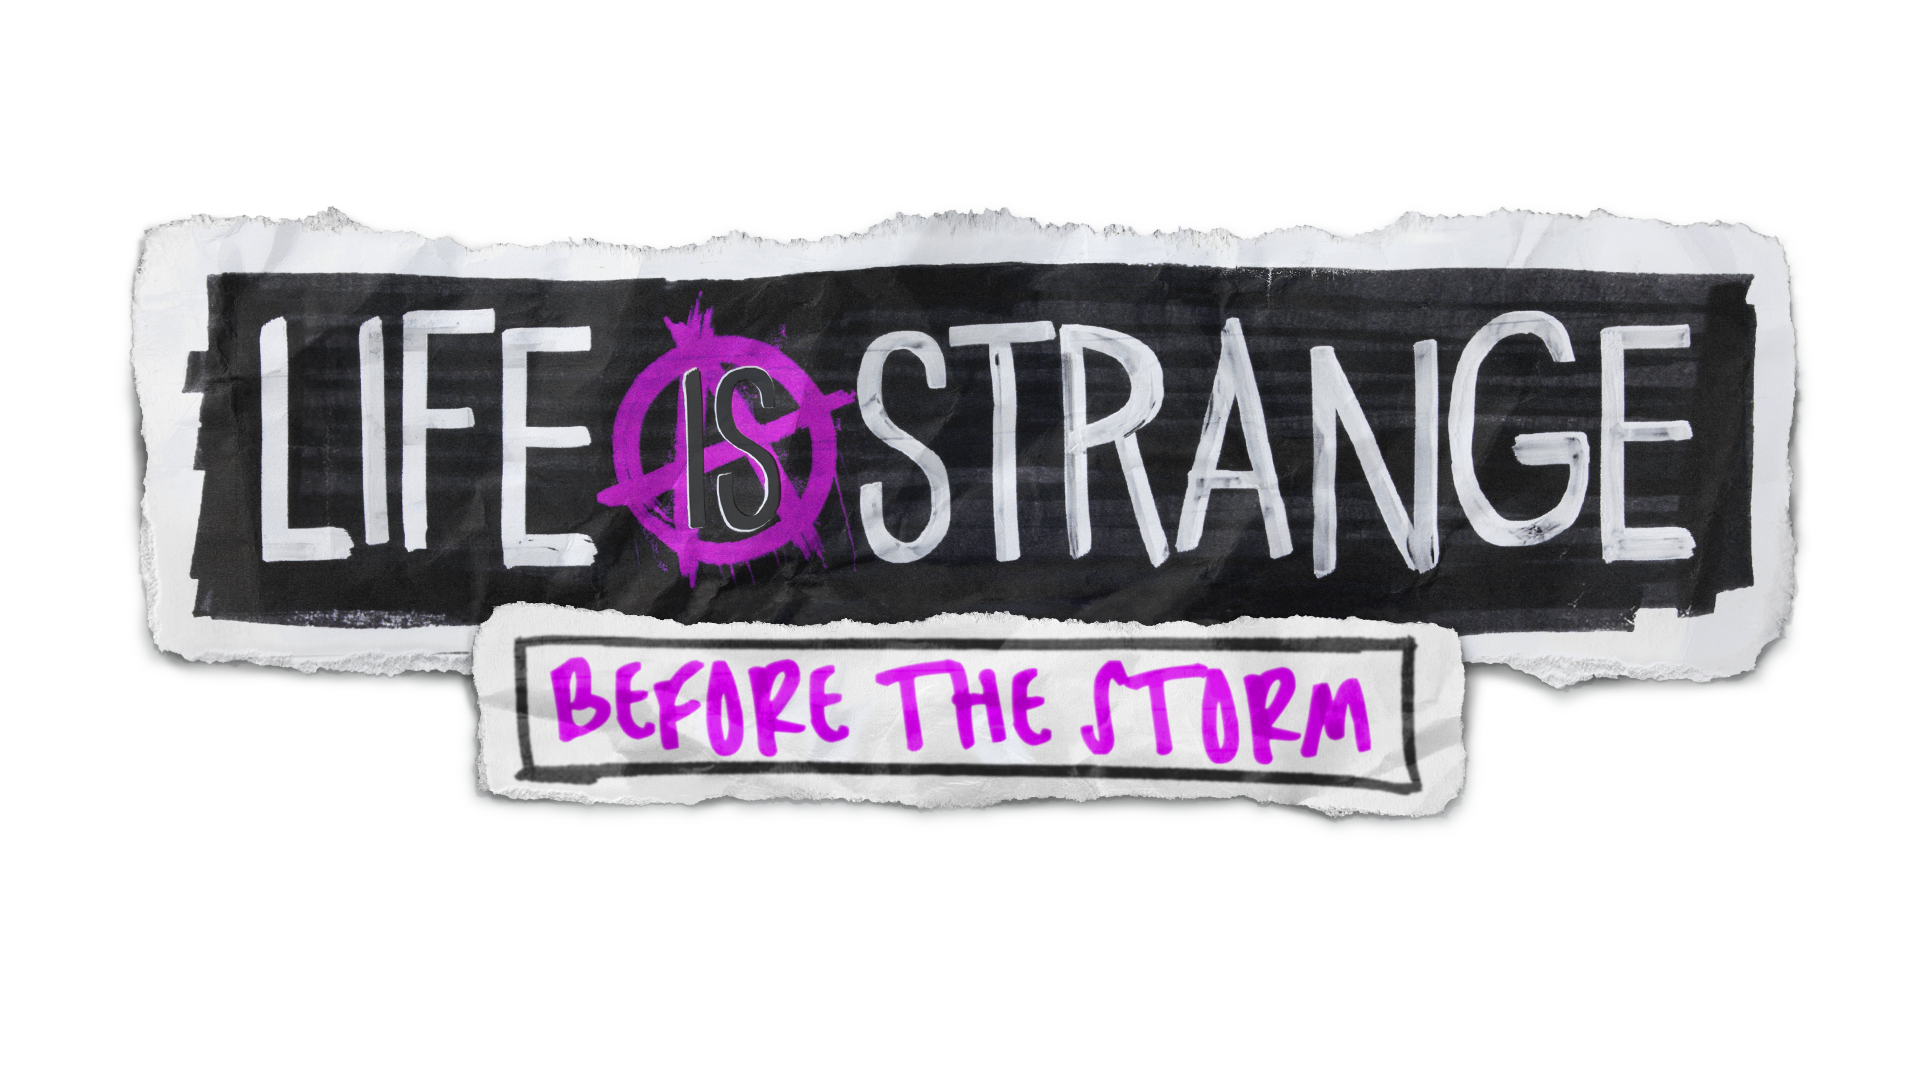 Graffiti 9 episode 3 10 points for life is strange